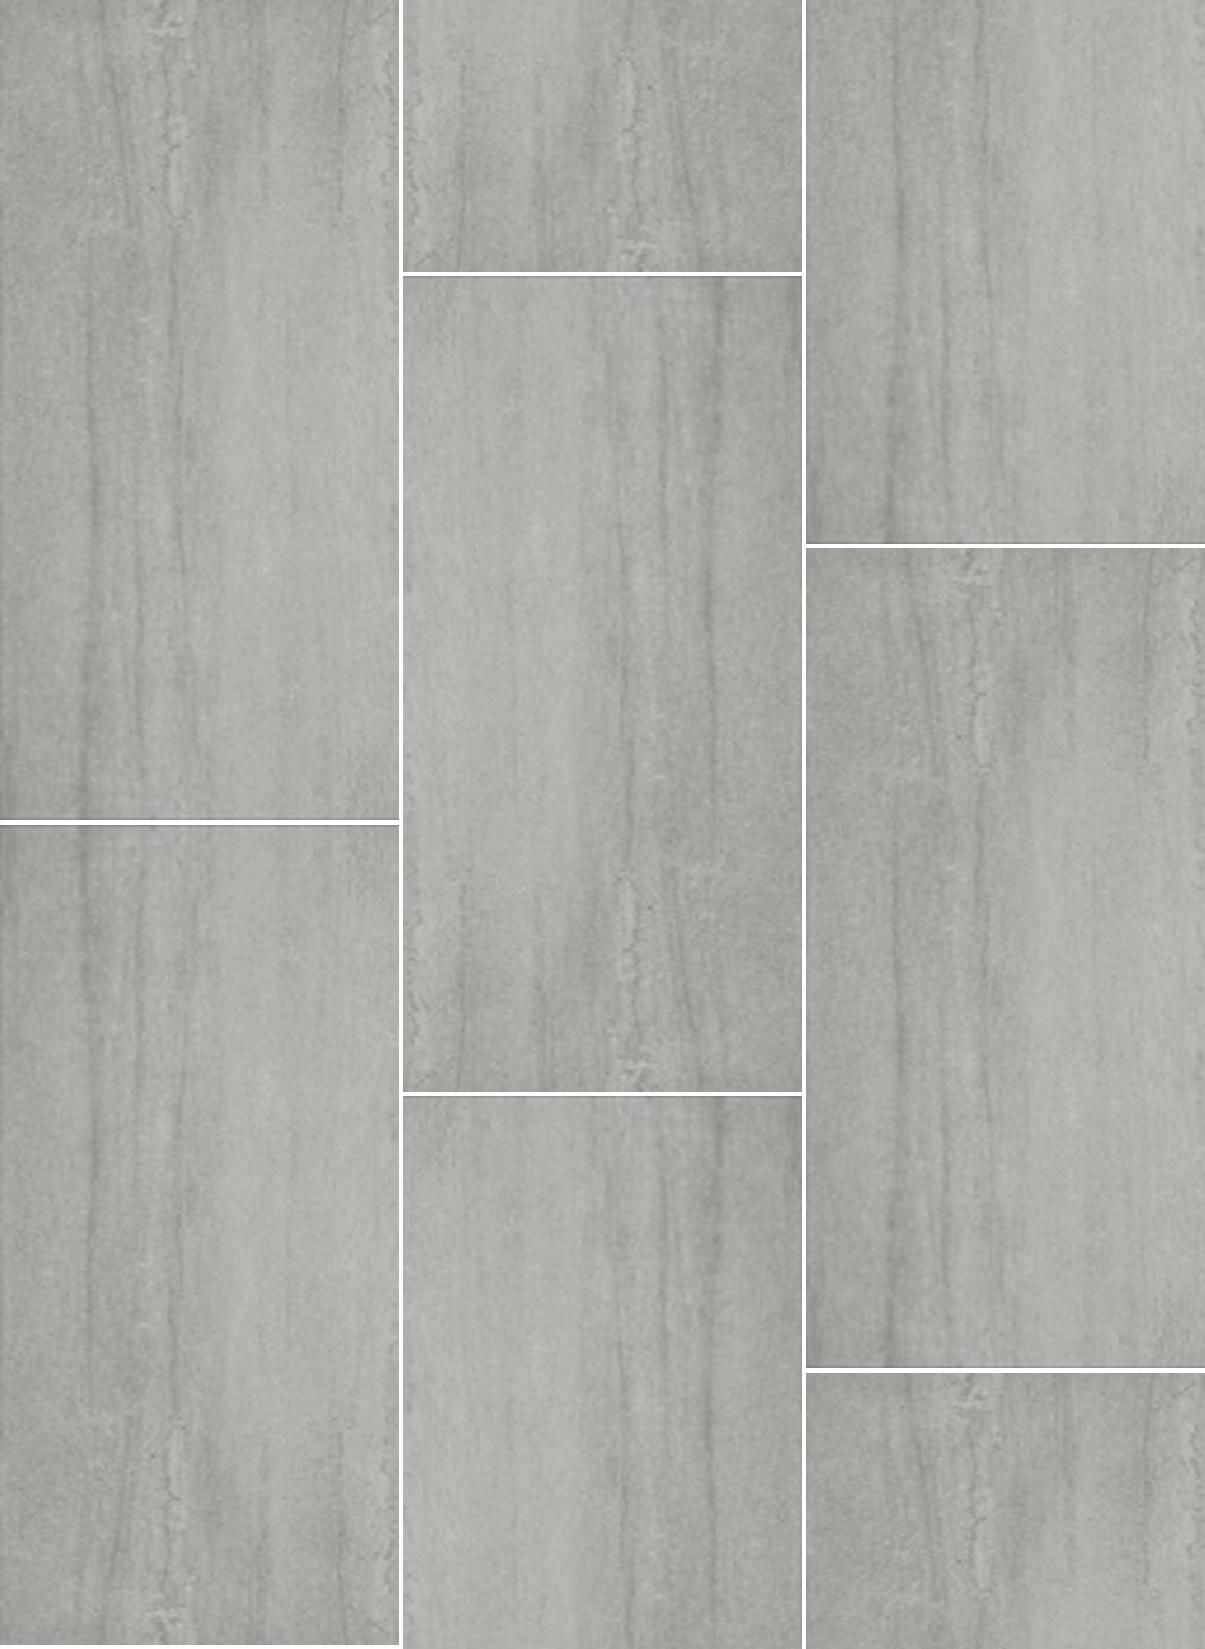 Lglimitlessdesign Contest Grey 12 24 Floor Tile Nick Miller Design Lg Limitless Design